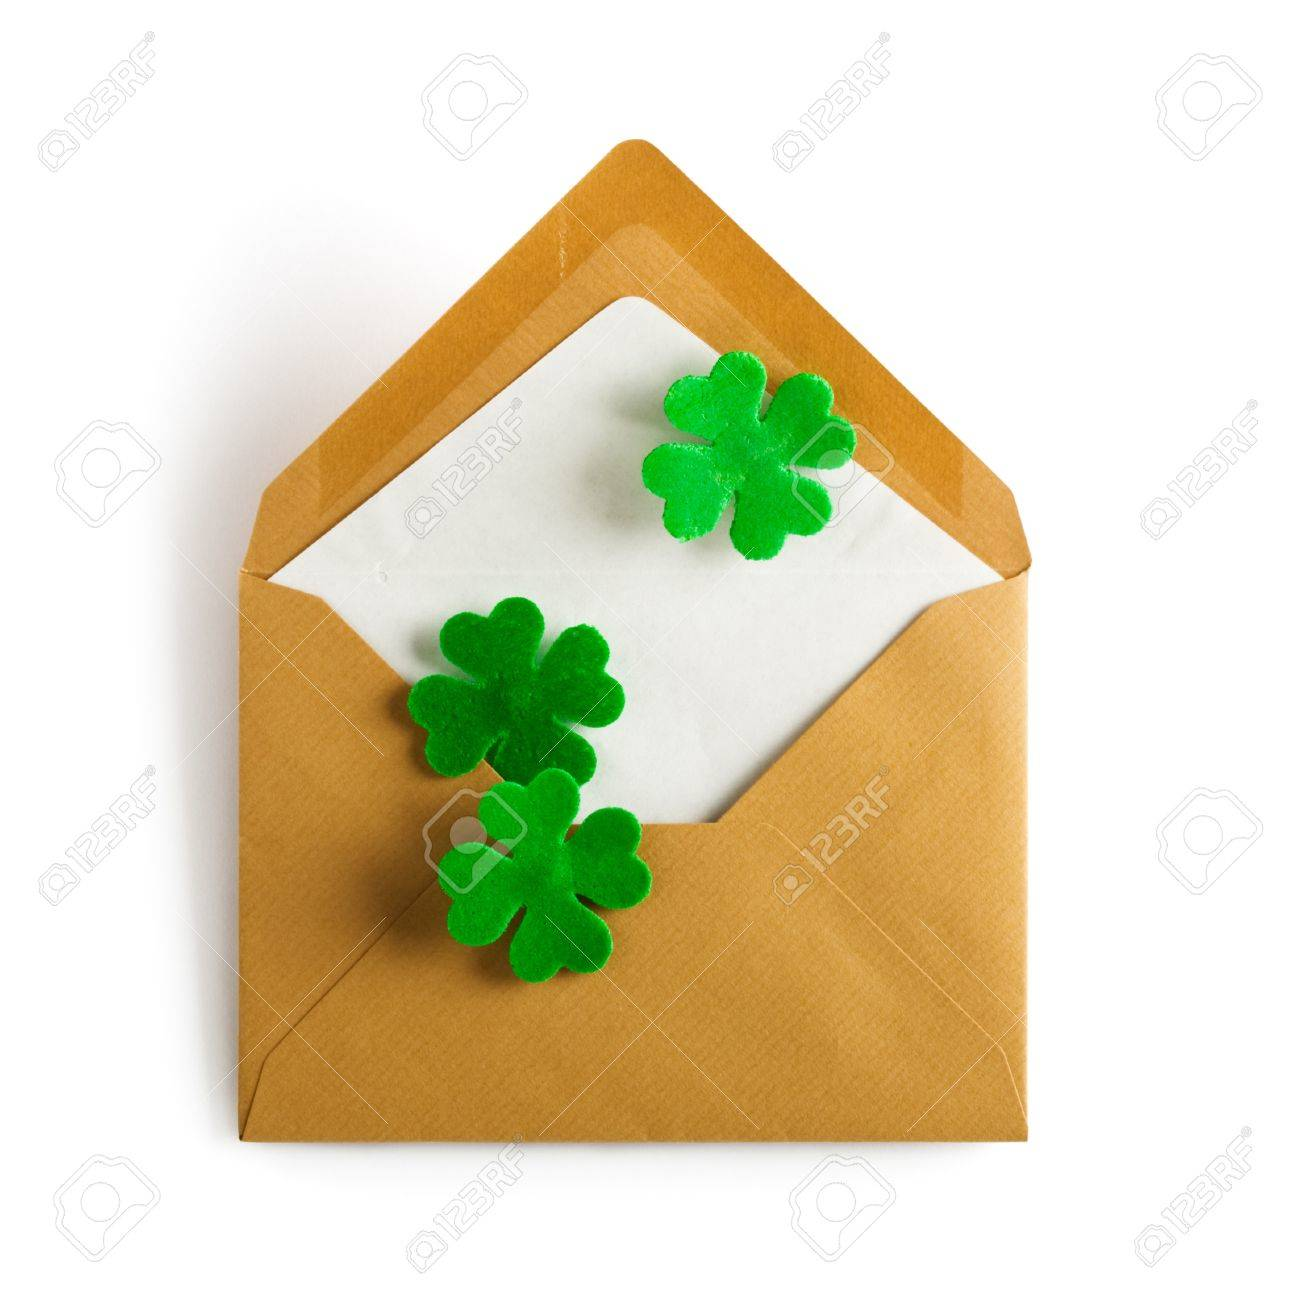 Open brown envelope with four leaf clover for Patricks Day clipping path included Stock Photo - 17077452